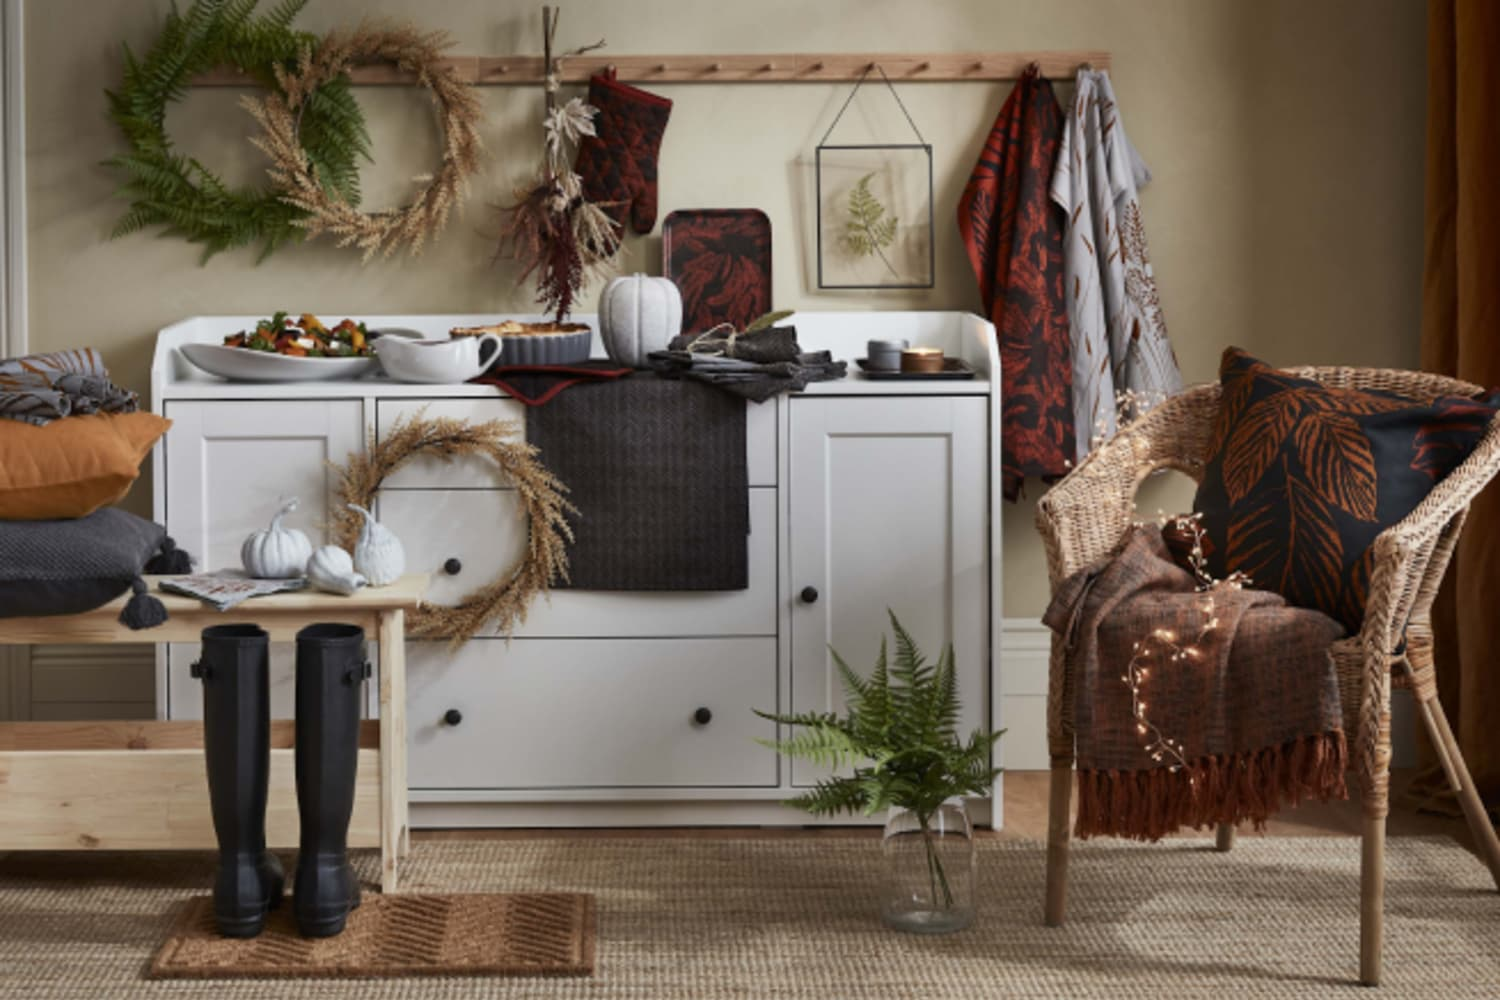 IKEA's Much-Anticipated Fall Collection Is Here, And It's Bringing All the Cozy Vibes